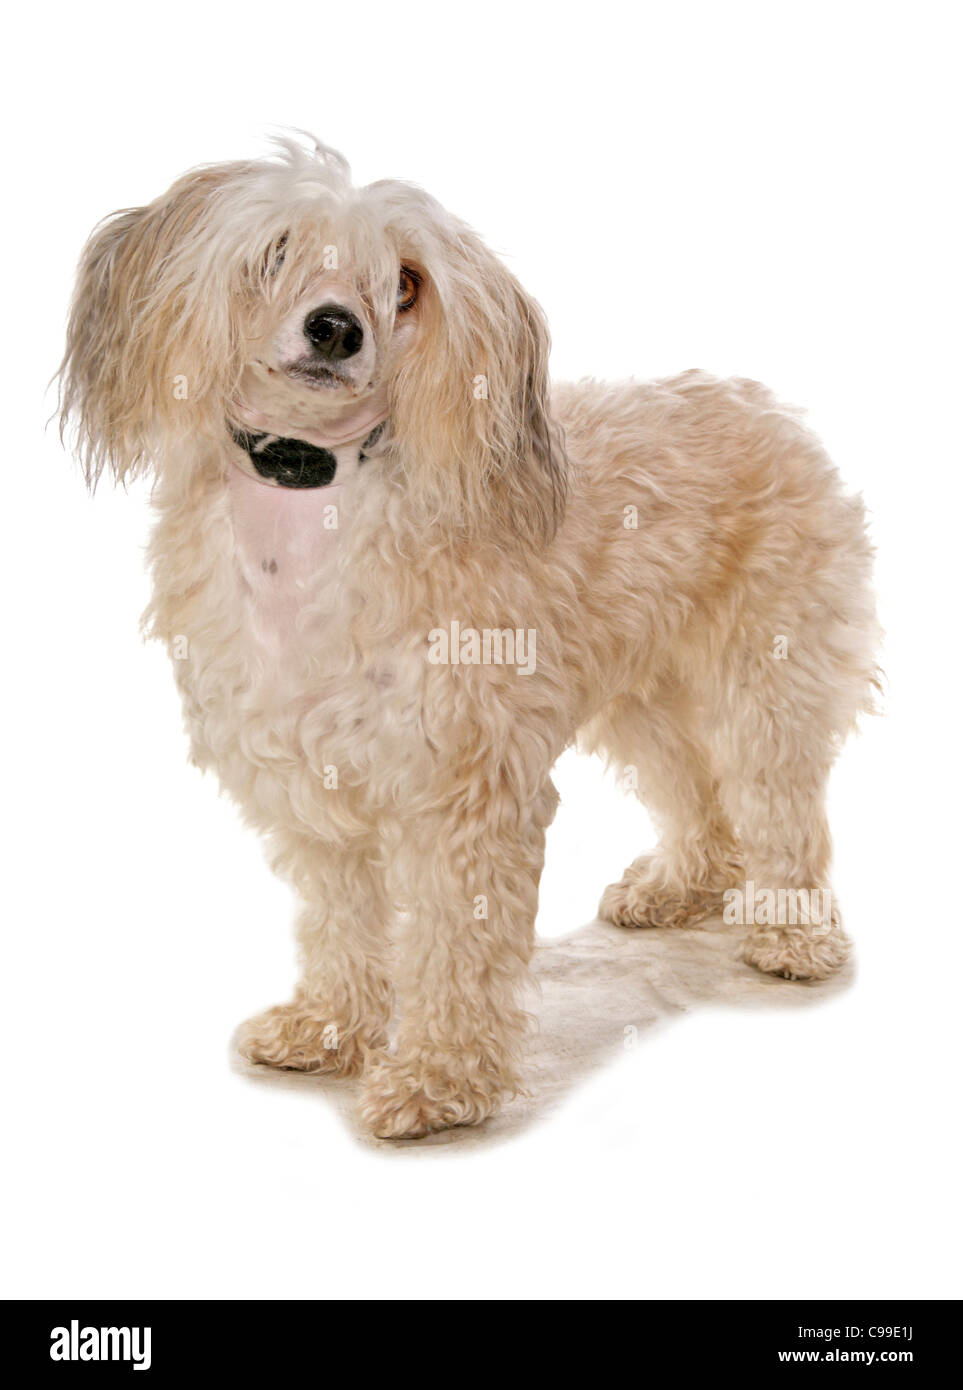 Chinese Crested dog - standing - cut out - Stock Image